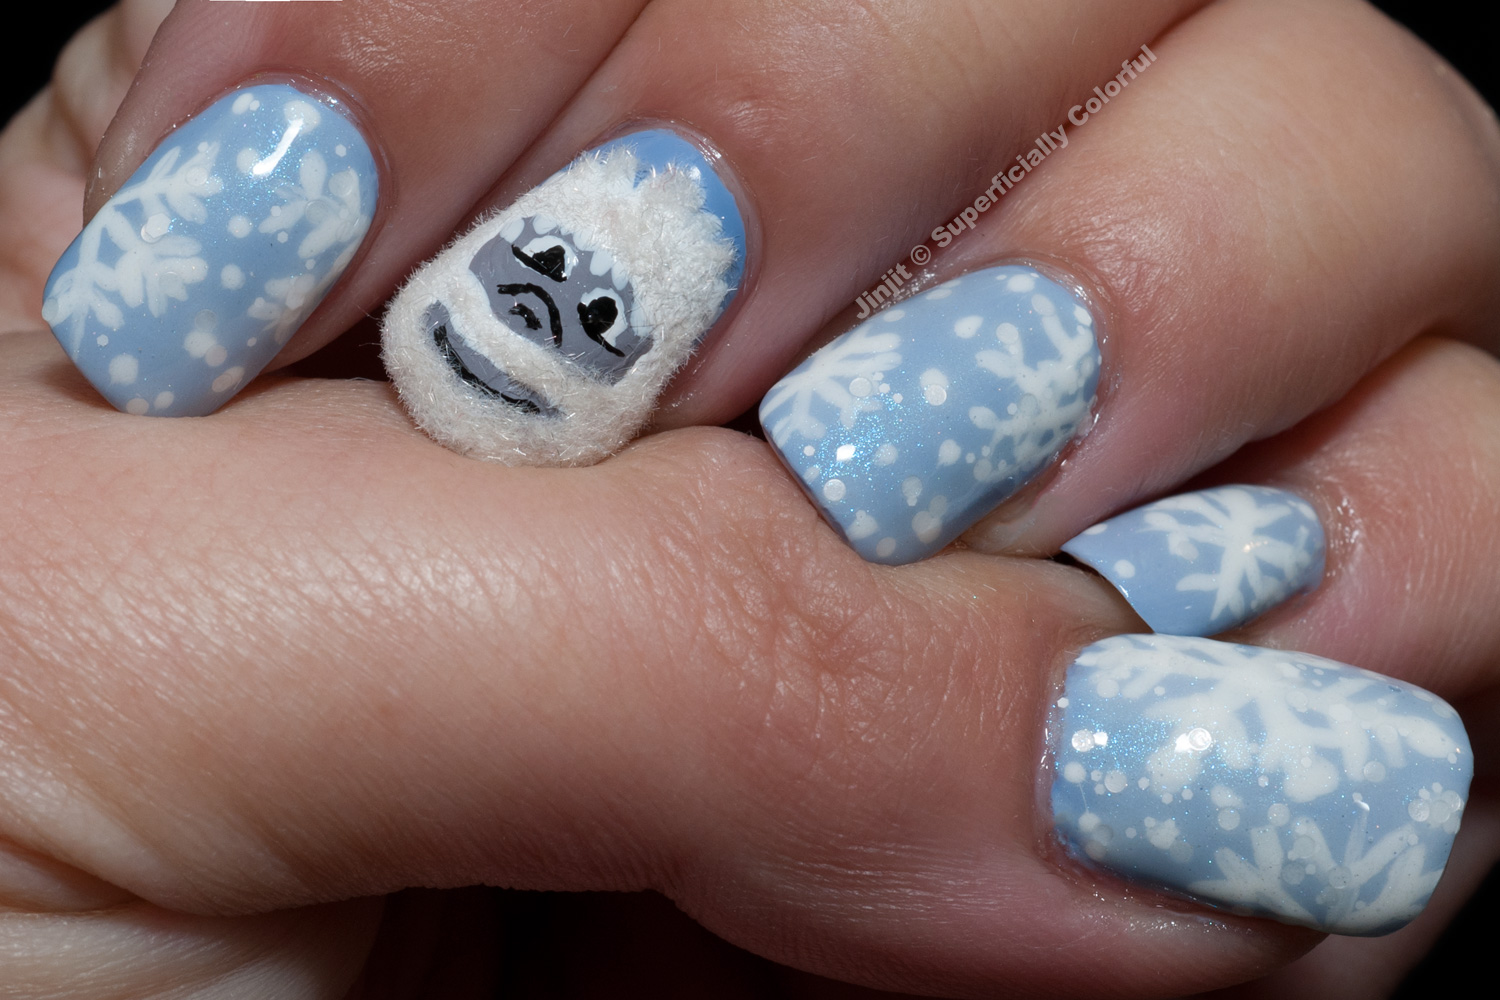 Yeti - Abominable Snowman Nail Art Tutorial